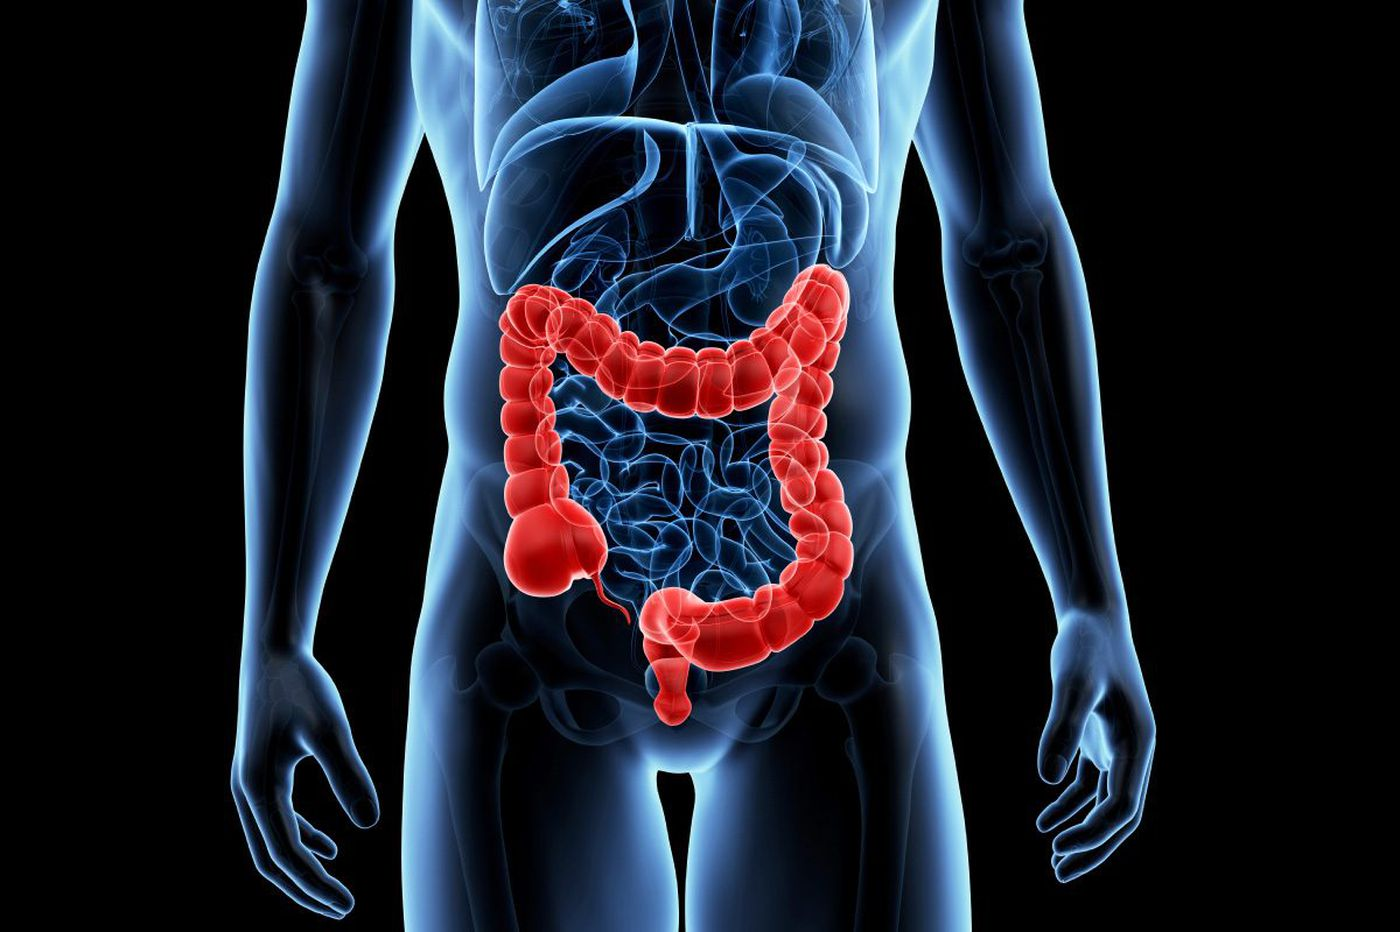 Q&A: Screening for colorectal cancer